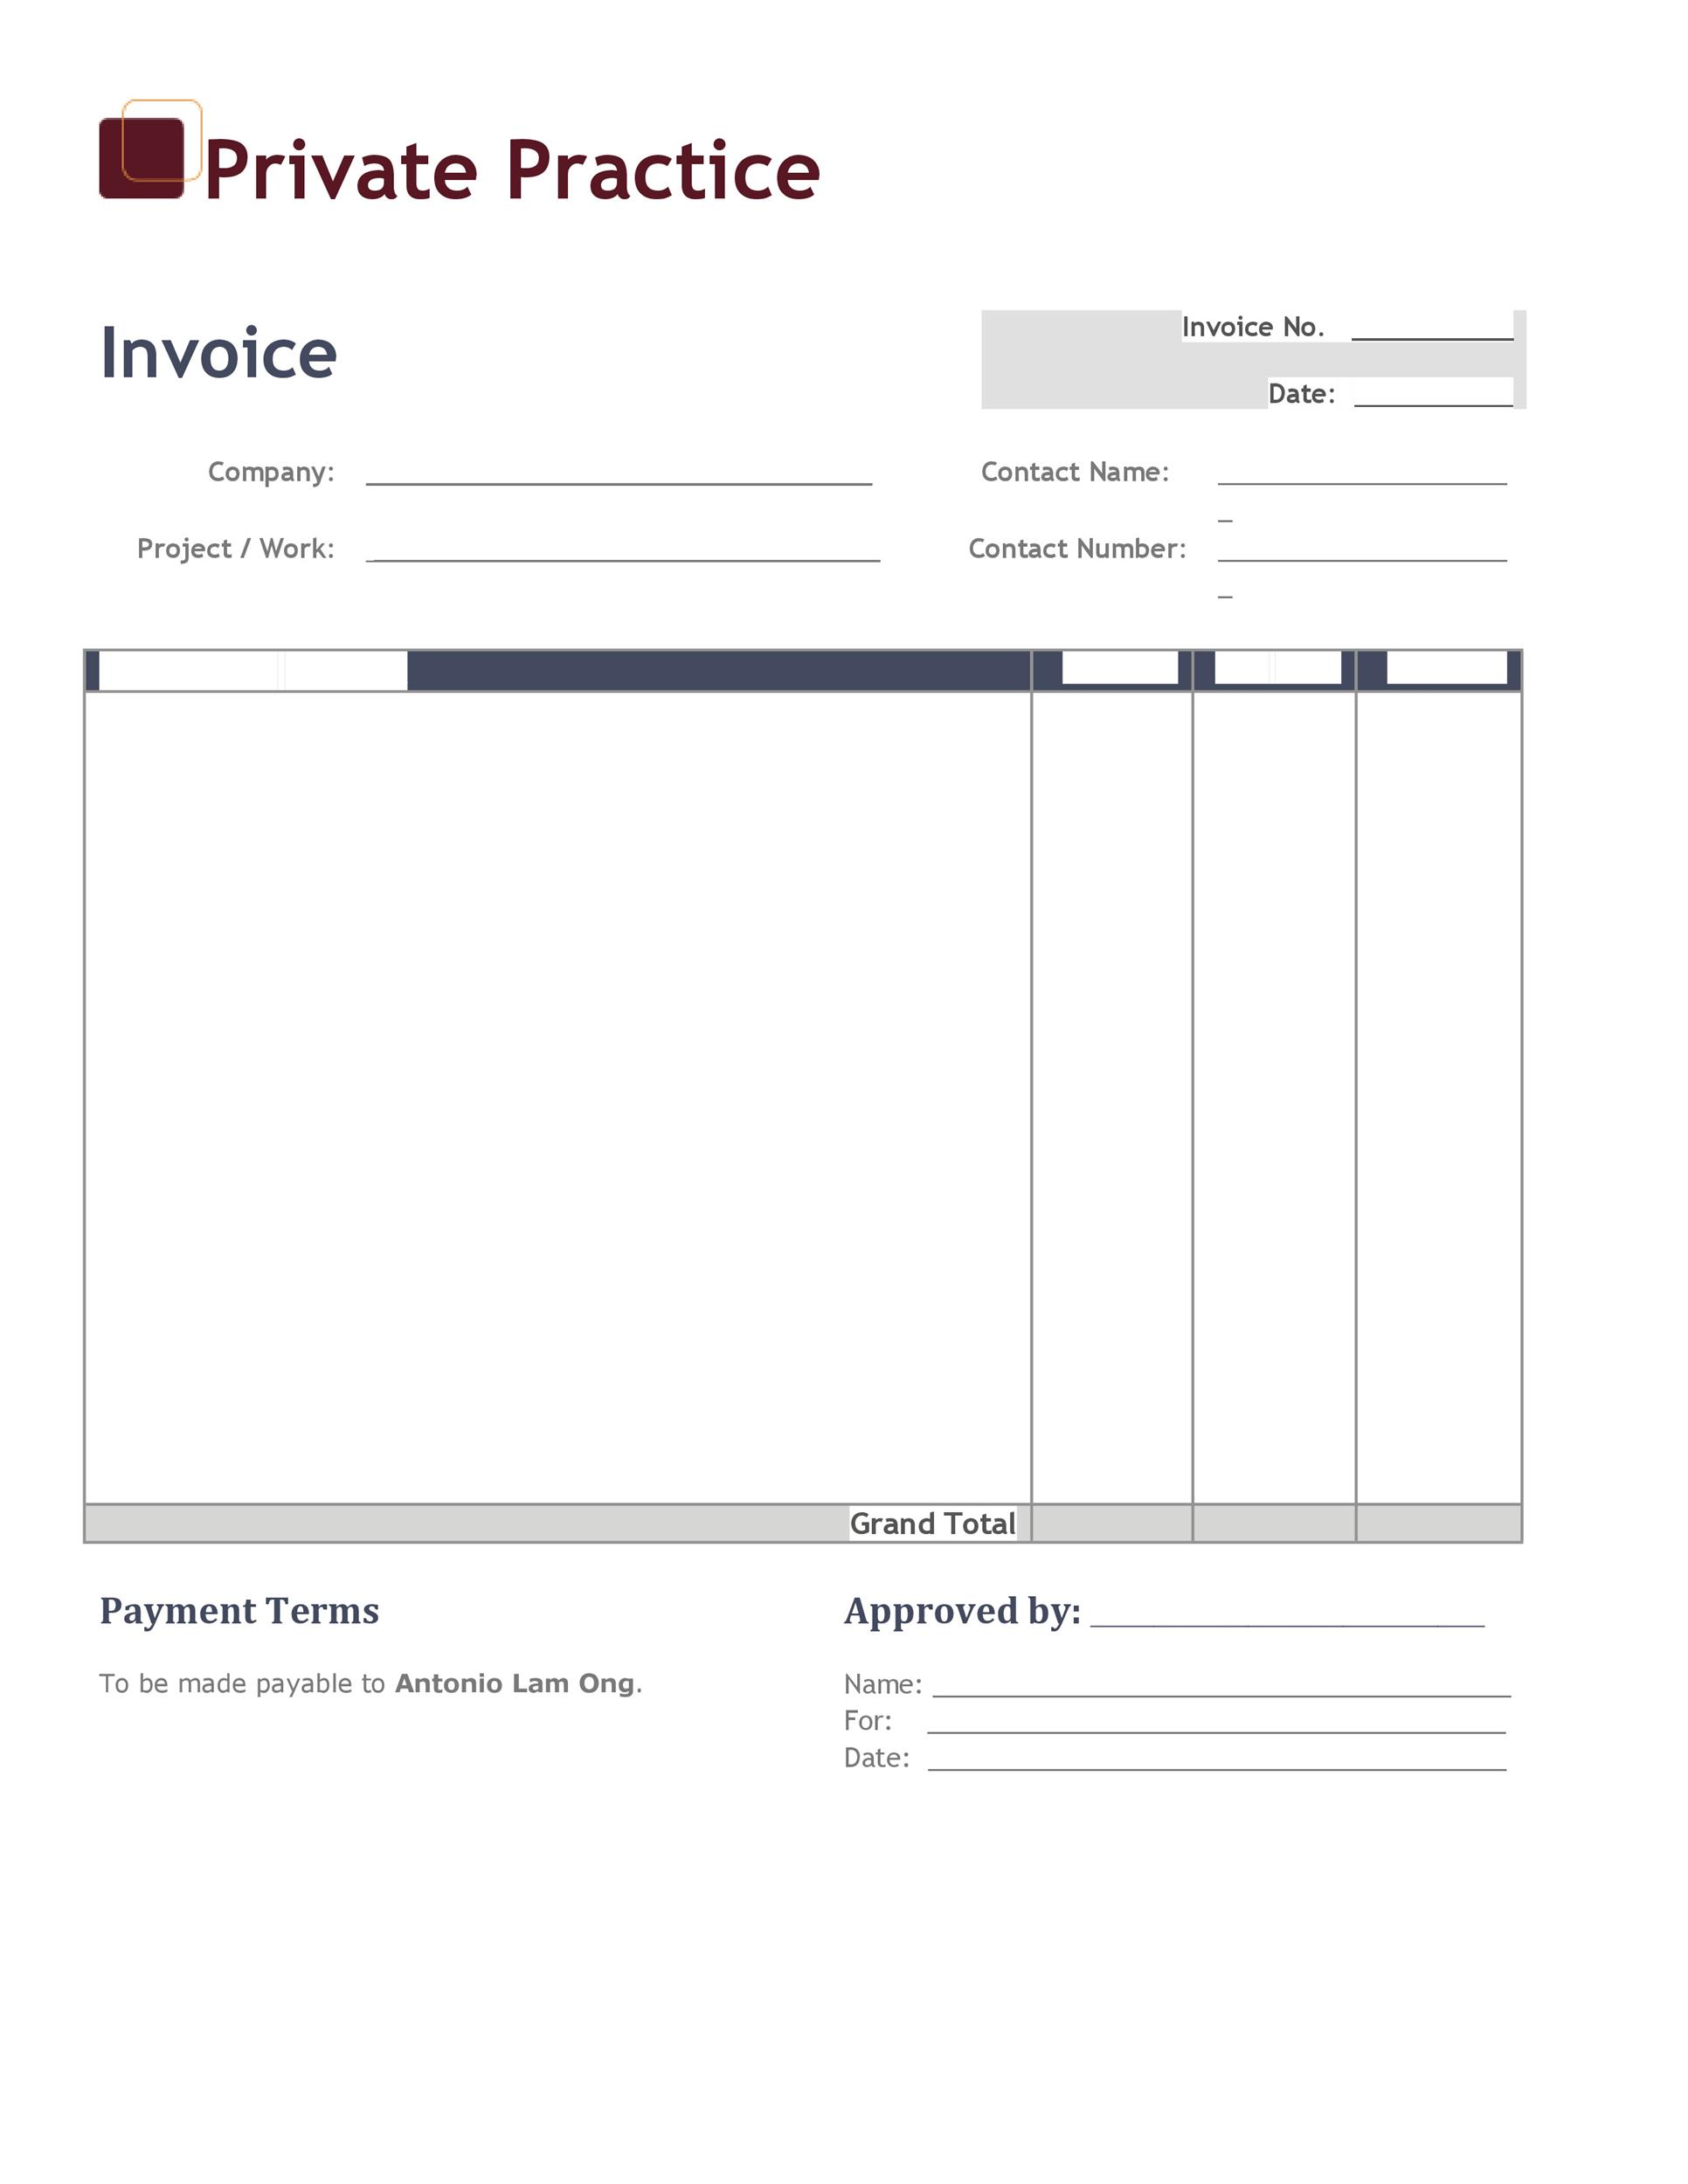 Invoice Templates Blank Commercial PDF Word Excel - Free blank invoice template online clothing stores for women